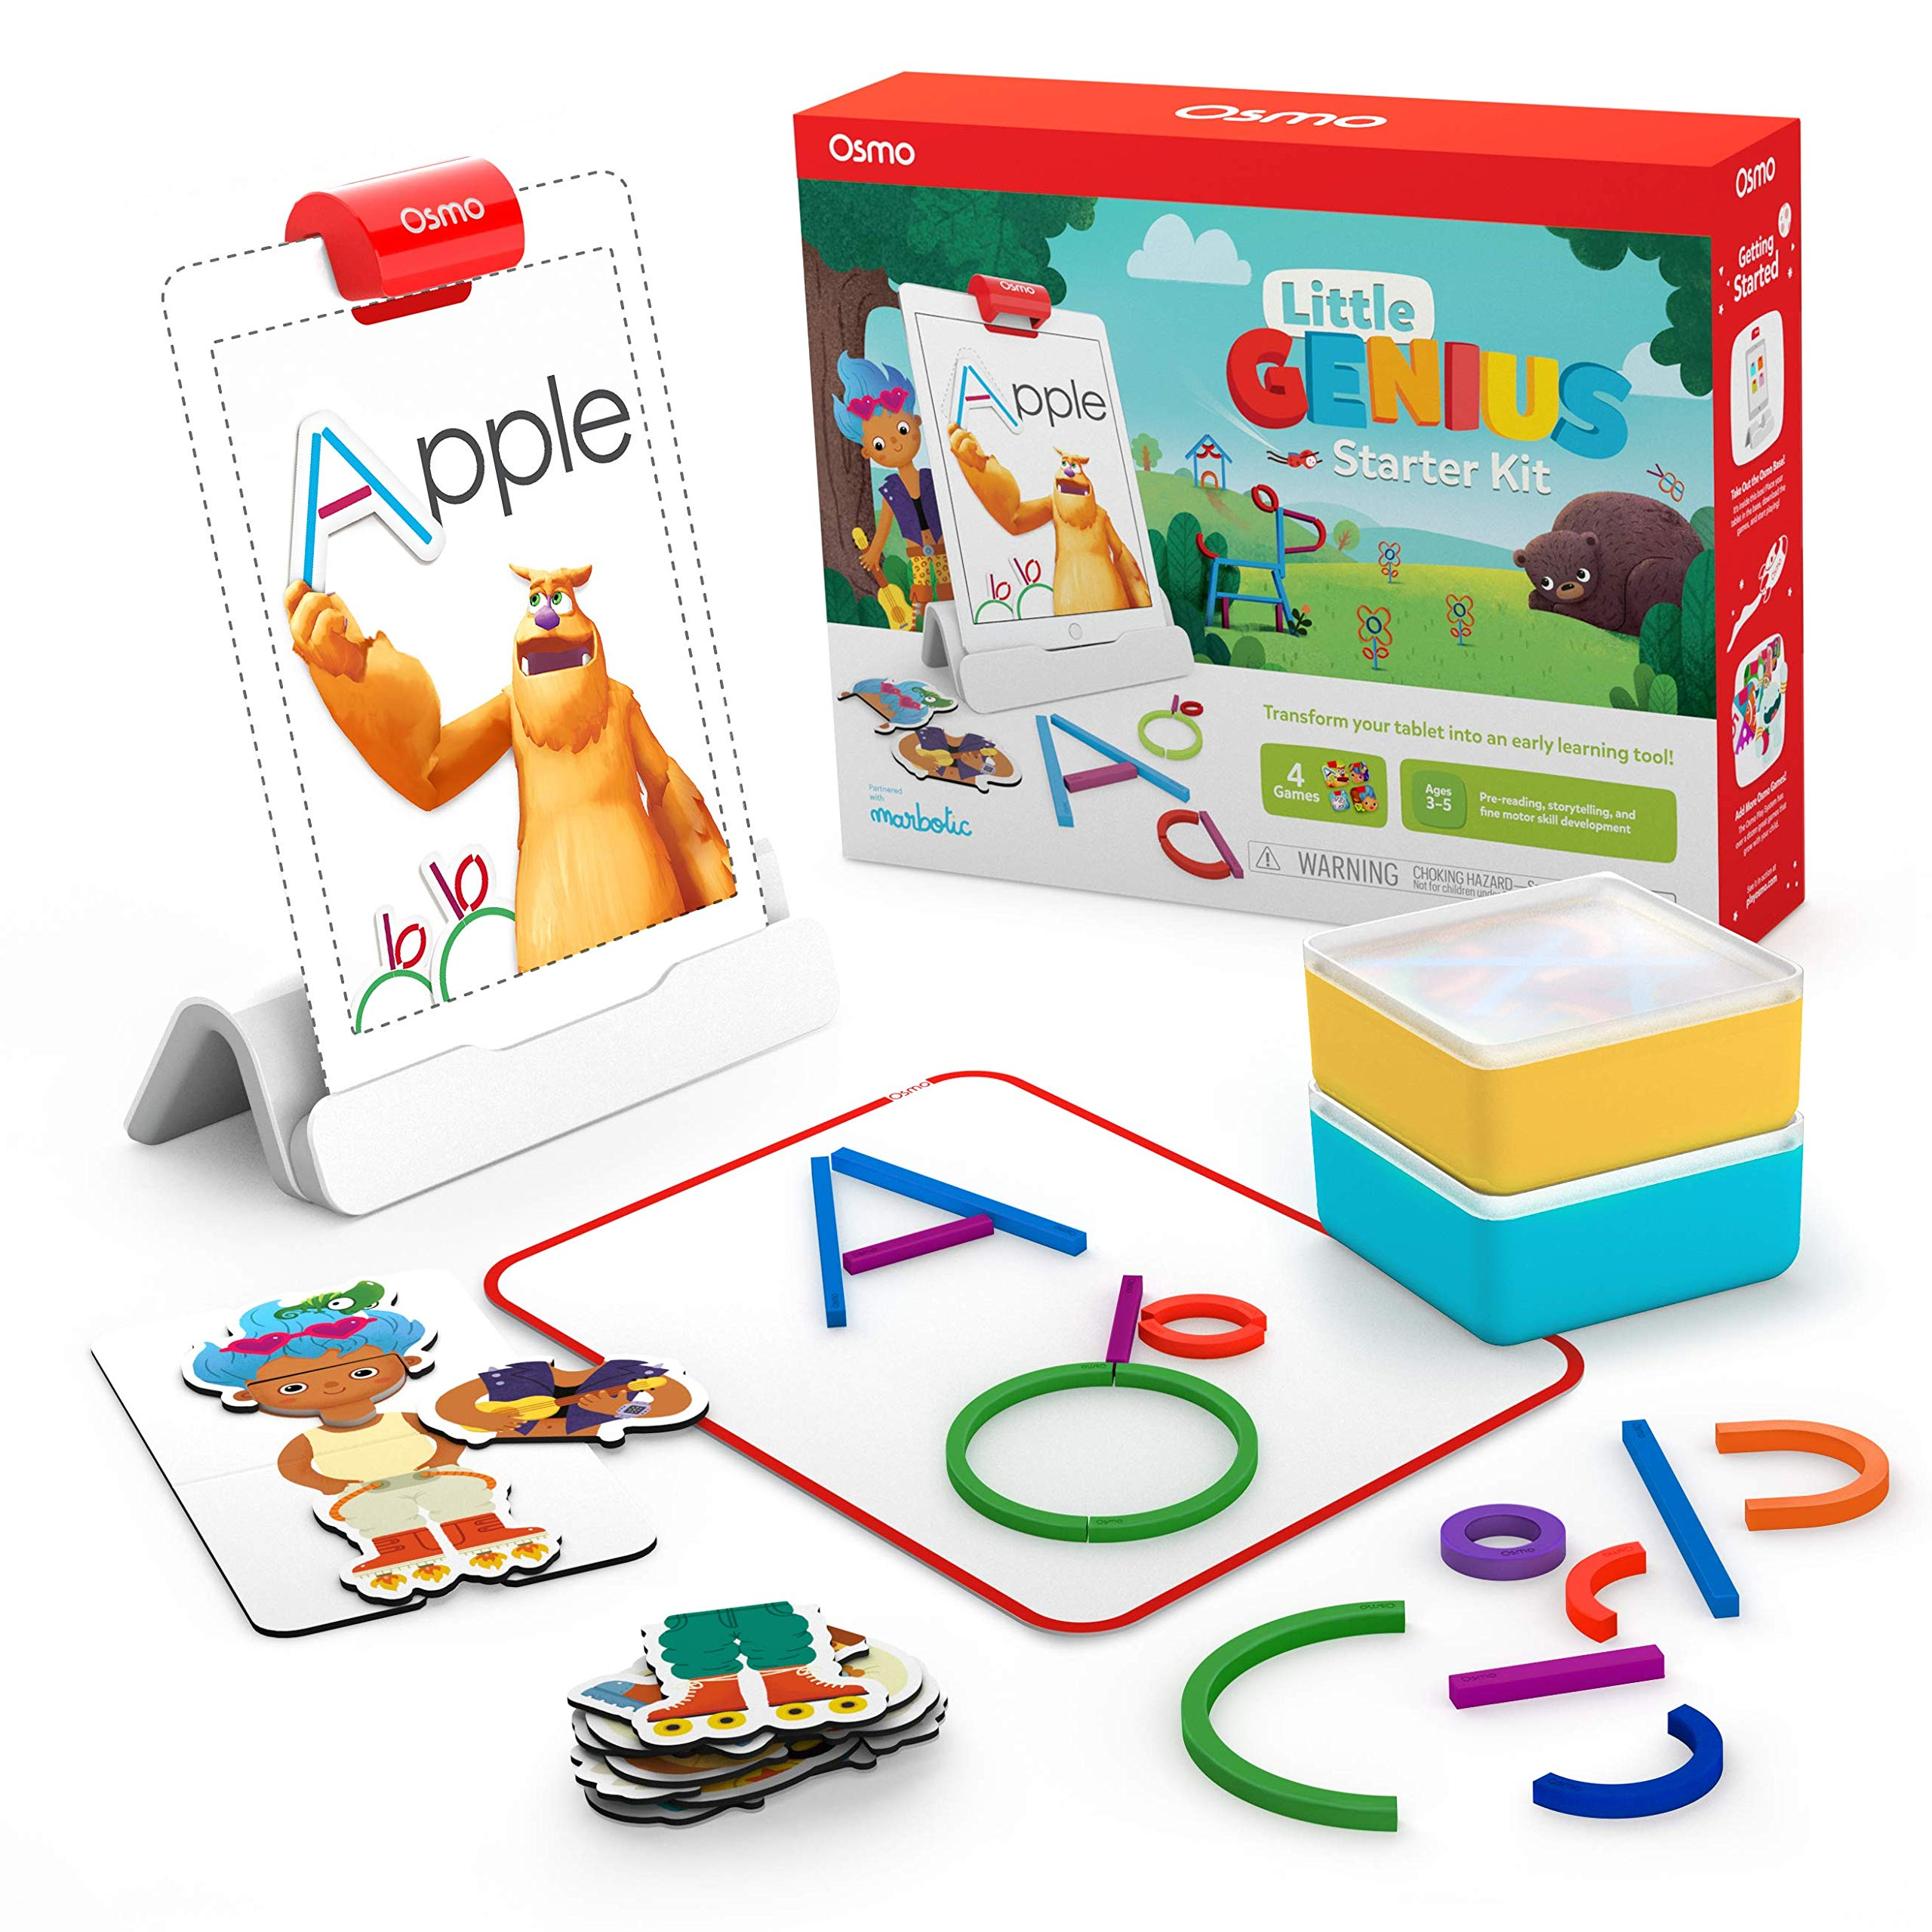 Osmo - Little Genius Starter Kit for iPad - 4 Hands-On Learning Games - Preschool Ages - Problem Solving & Creativity (Osmo iPad Base Included) by Osmo